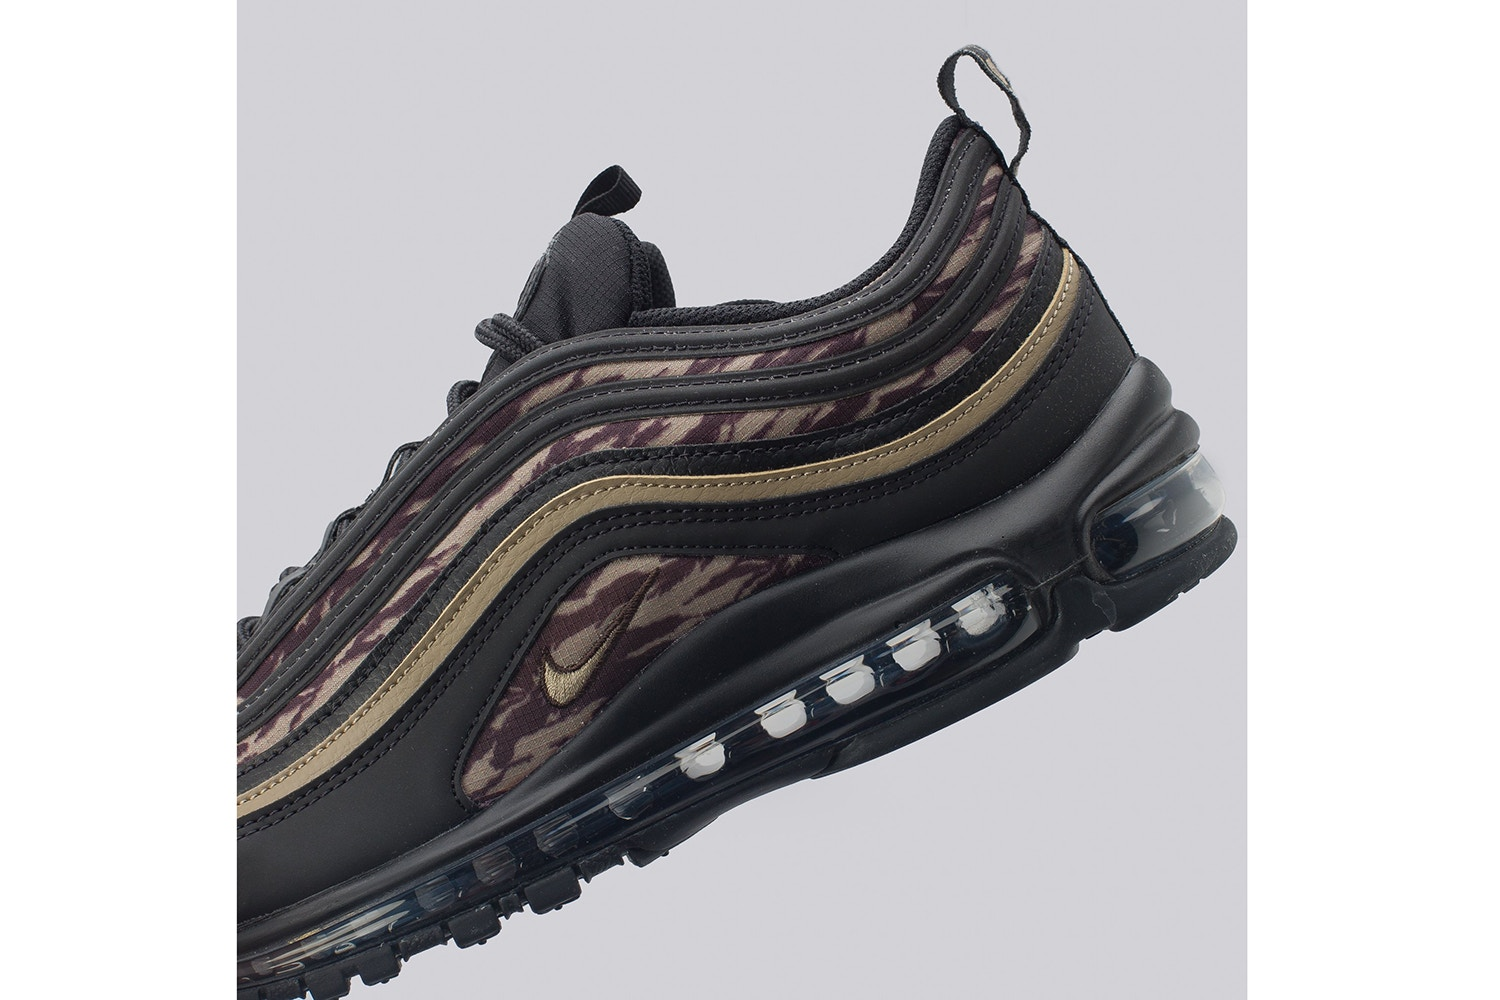 timeless design 0dfd5 a2e93 Nike Air Max 97 'Tiger Camo' | Hype Magazine